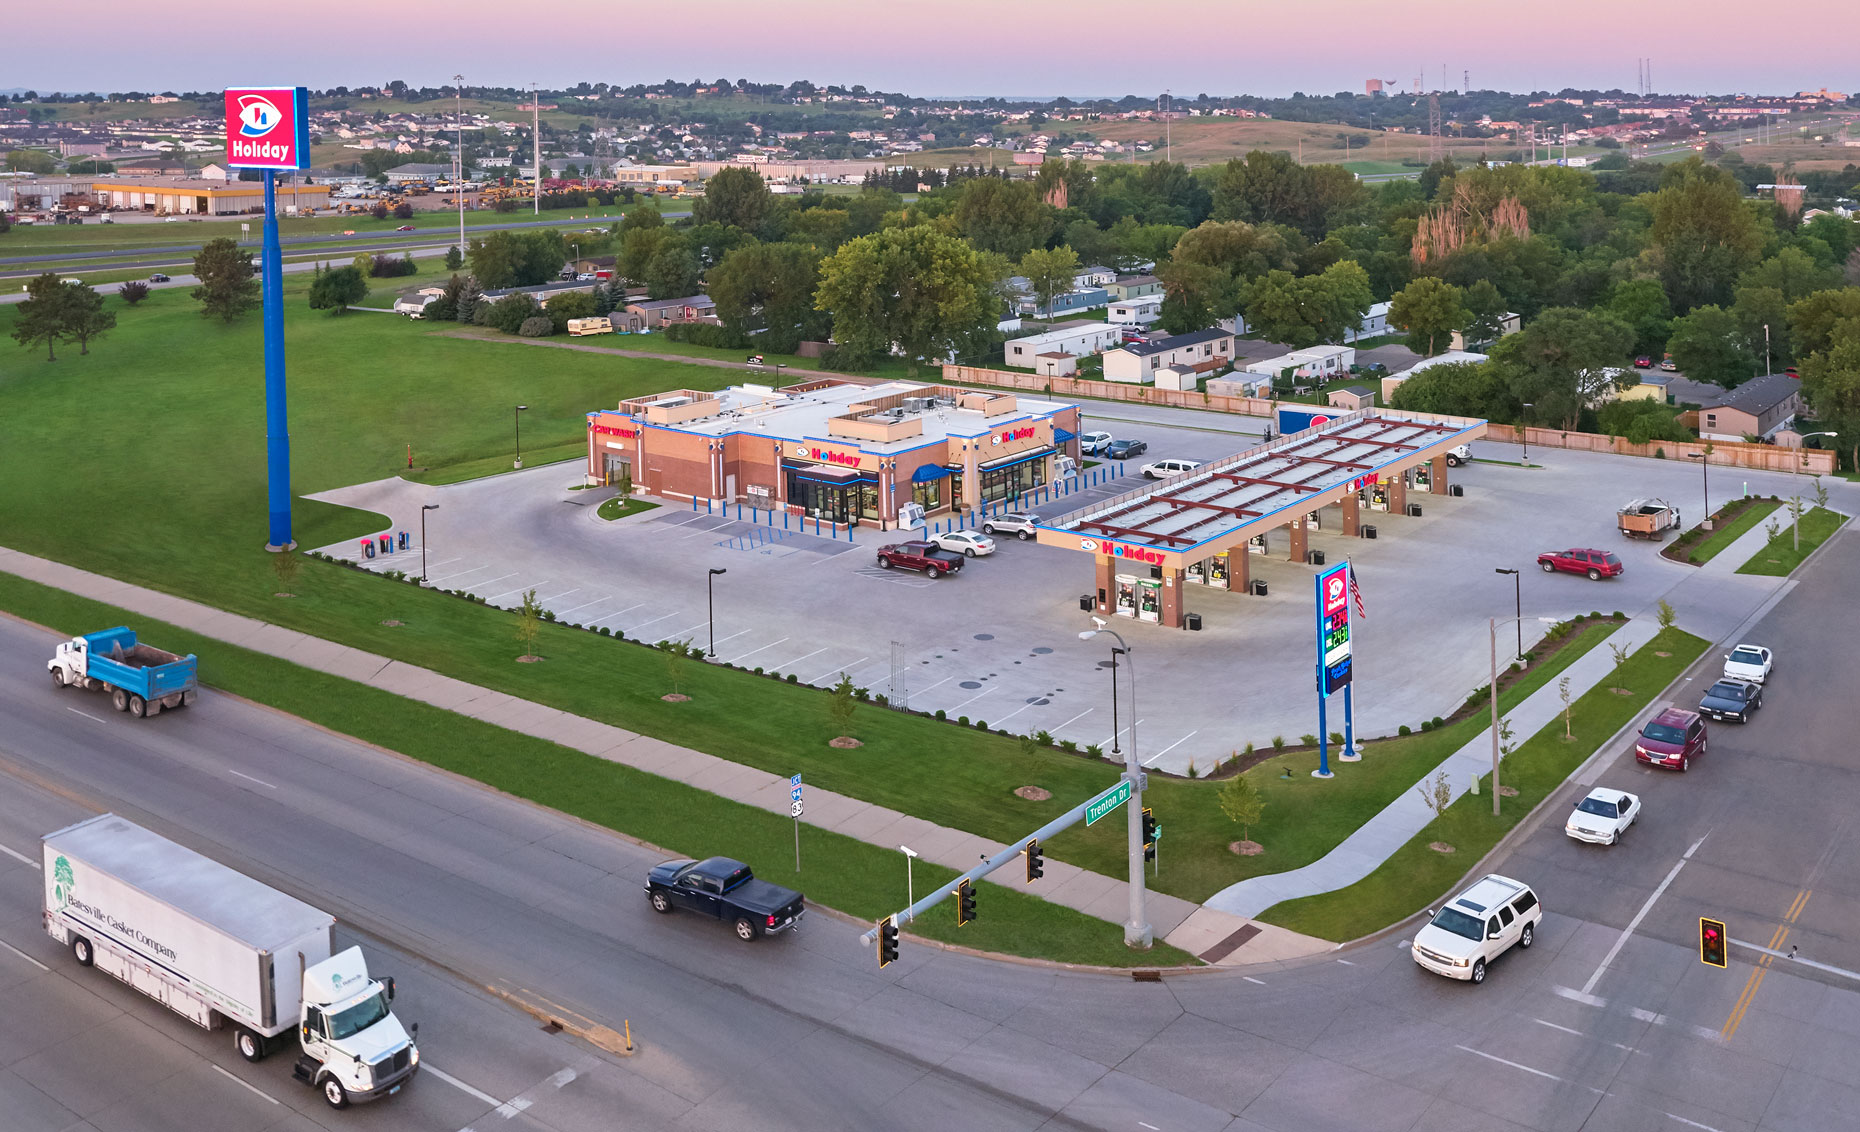 Holiday gas station/sunset/arial drone photography